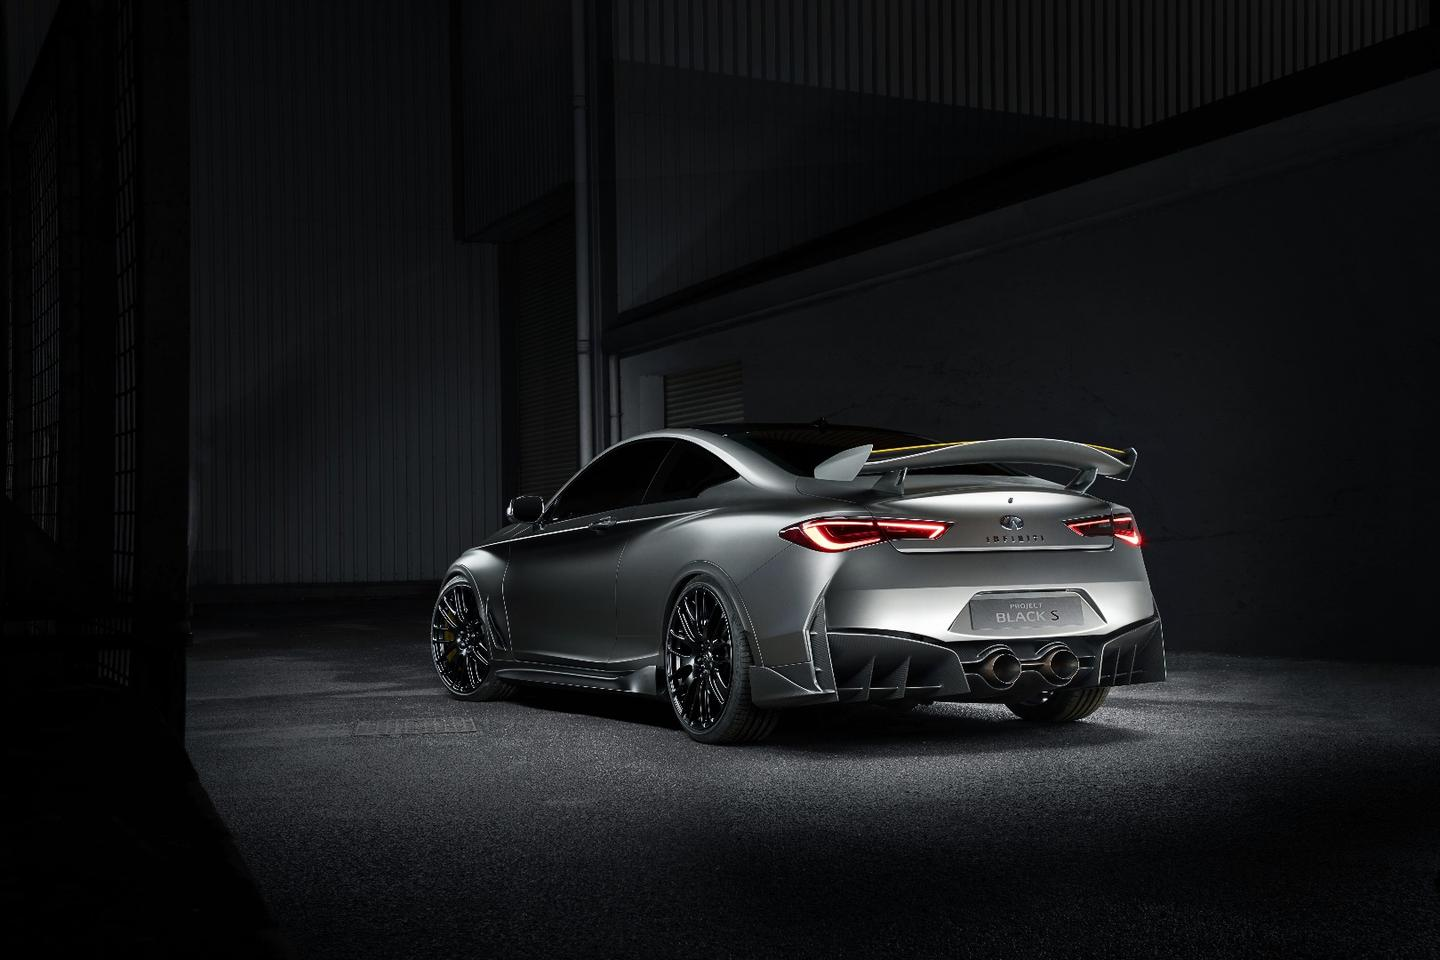 The rear wing on the Project BlackS doesn't hint at its potential, itshouts about it